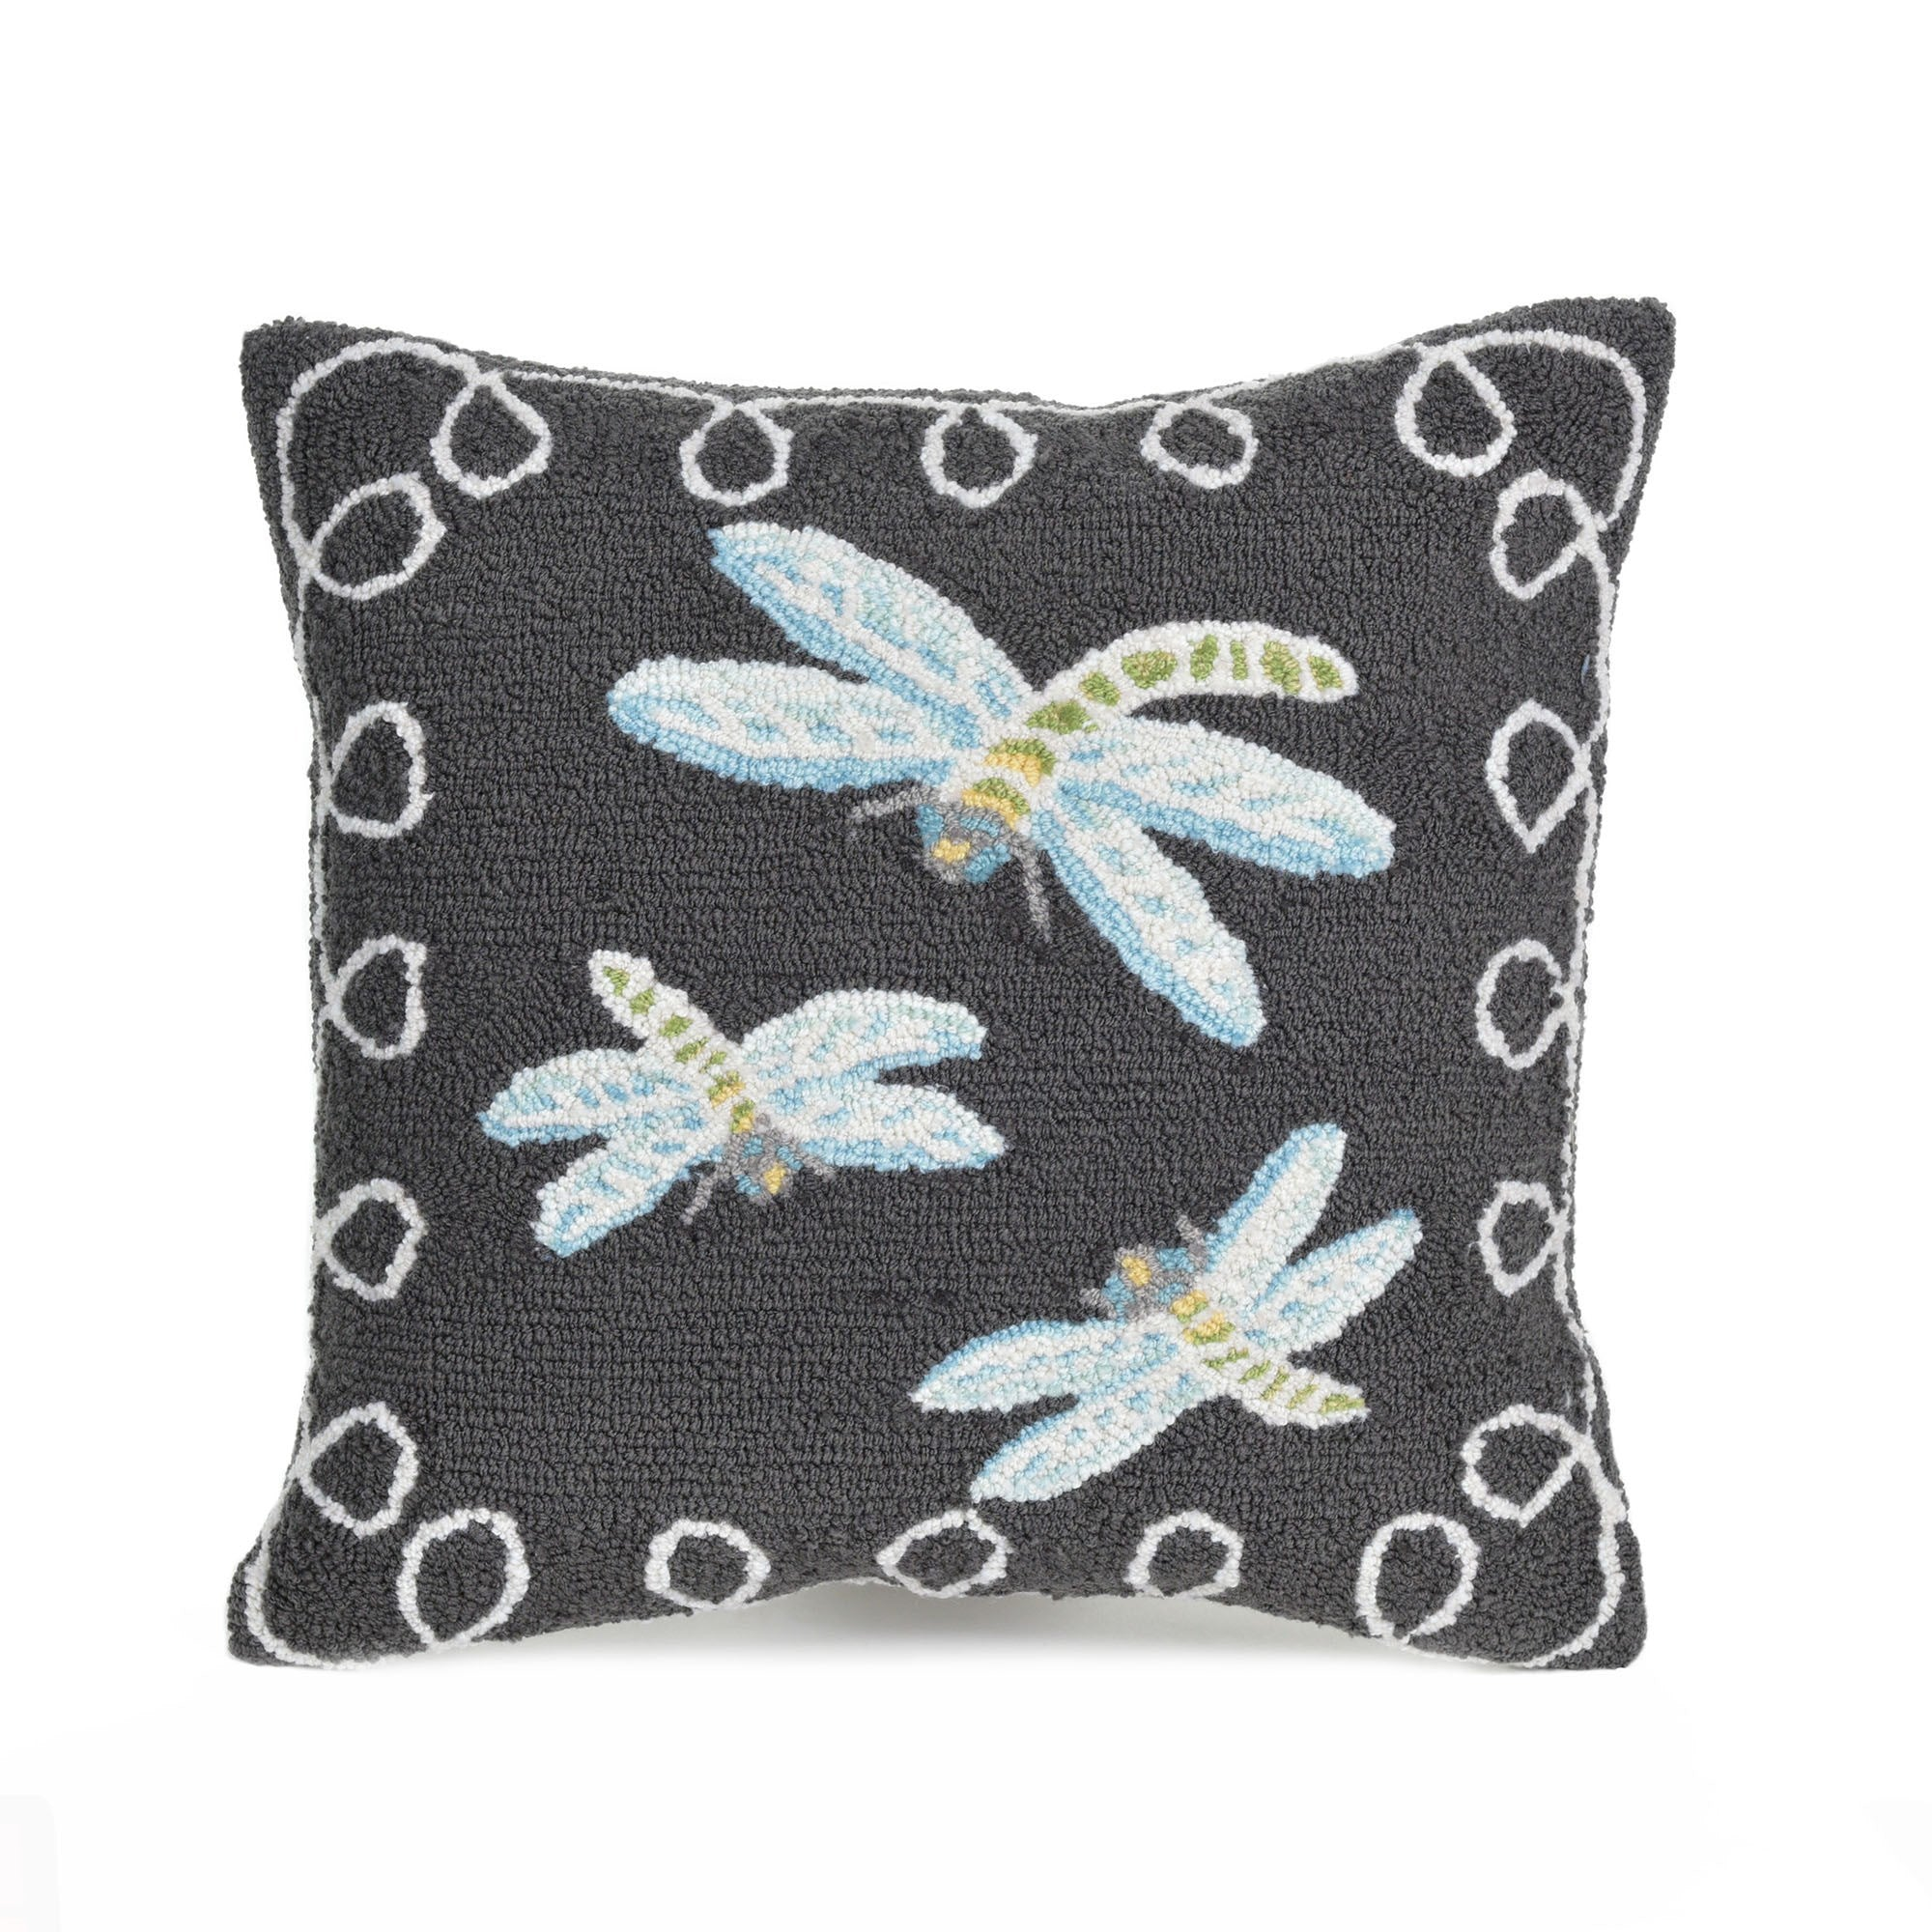 "Dragonfly Midnight 18"" Square Pillow"